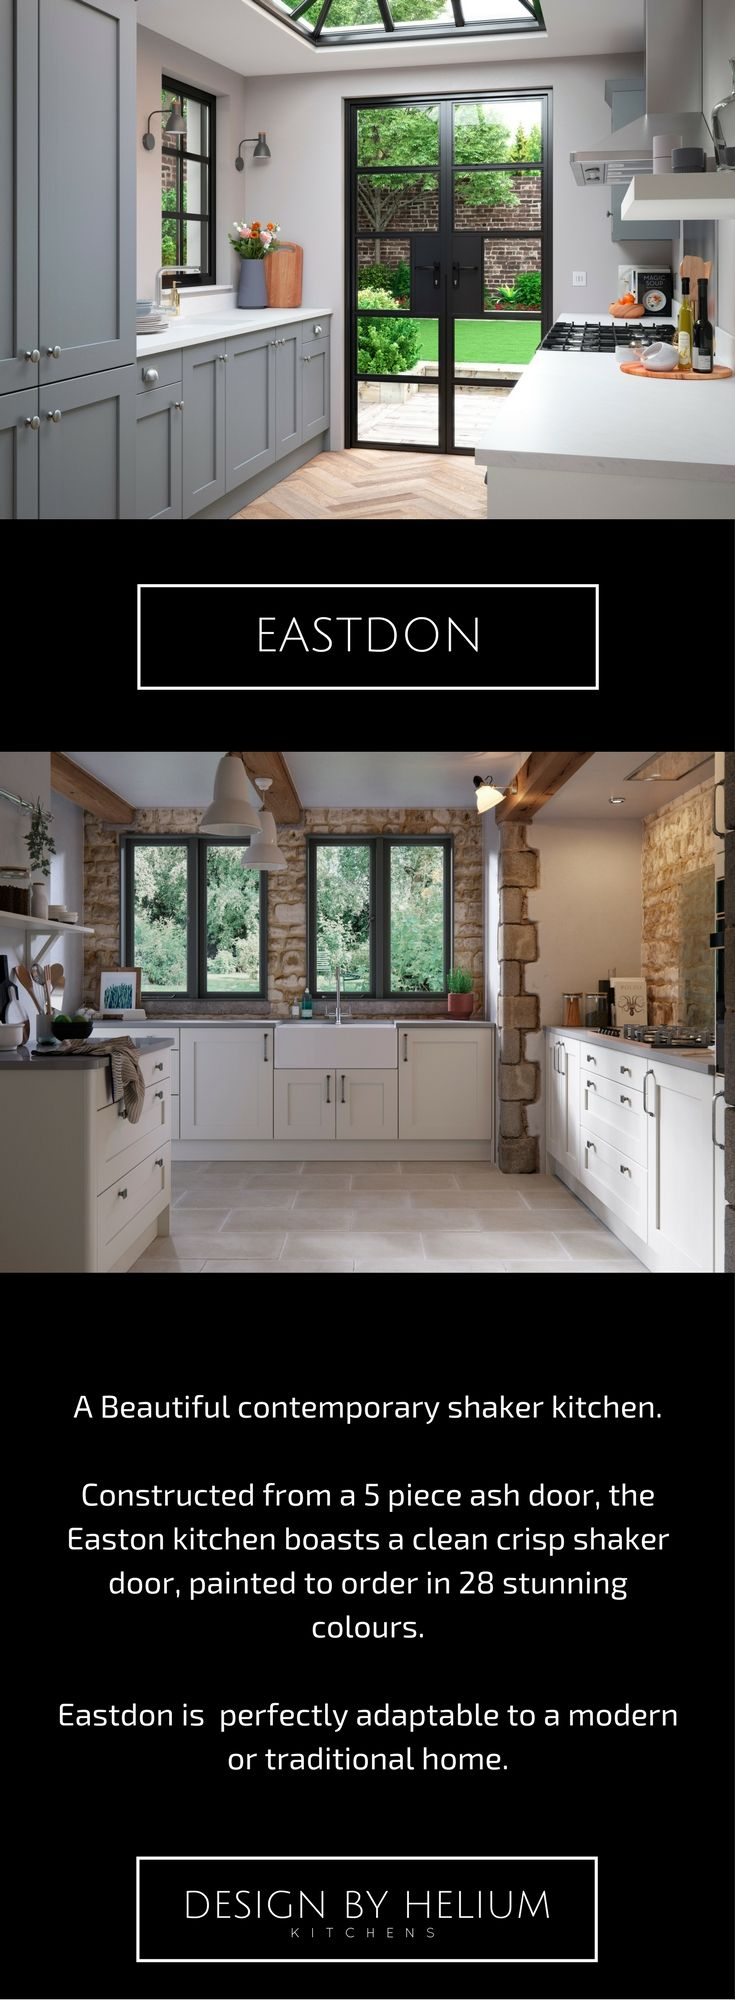 EASTON Beautiful contemporary shaker kitchen The